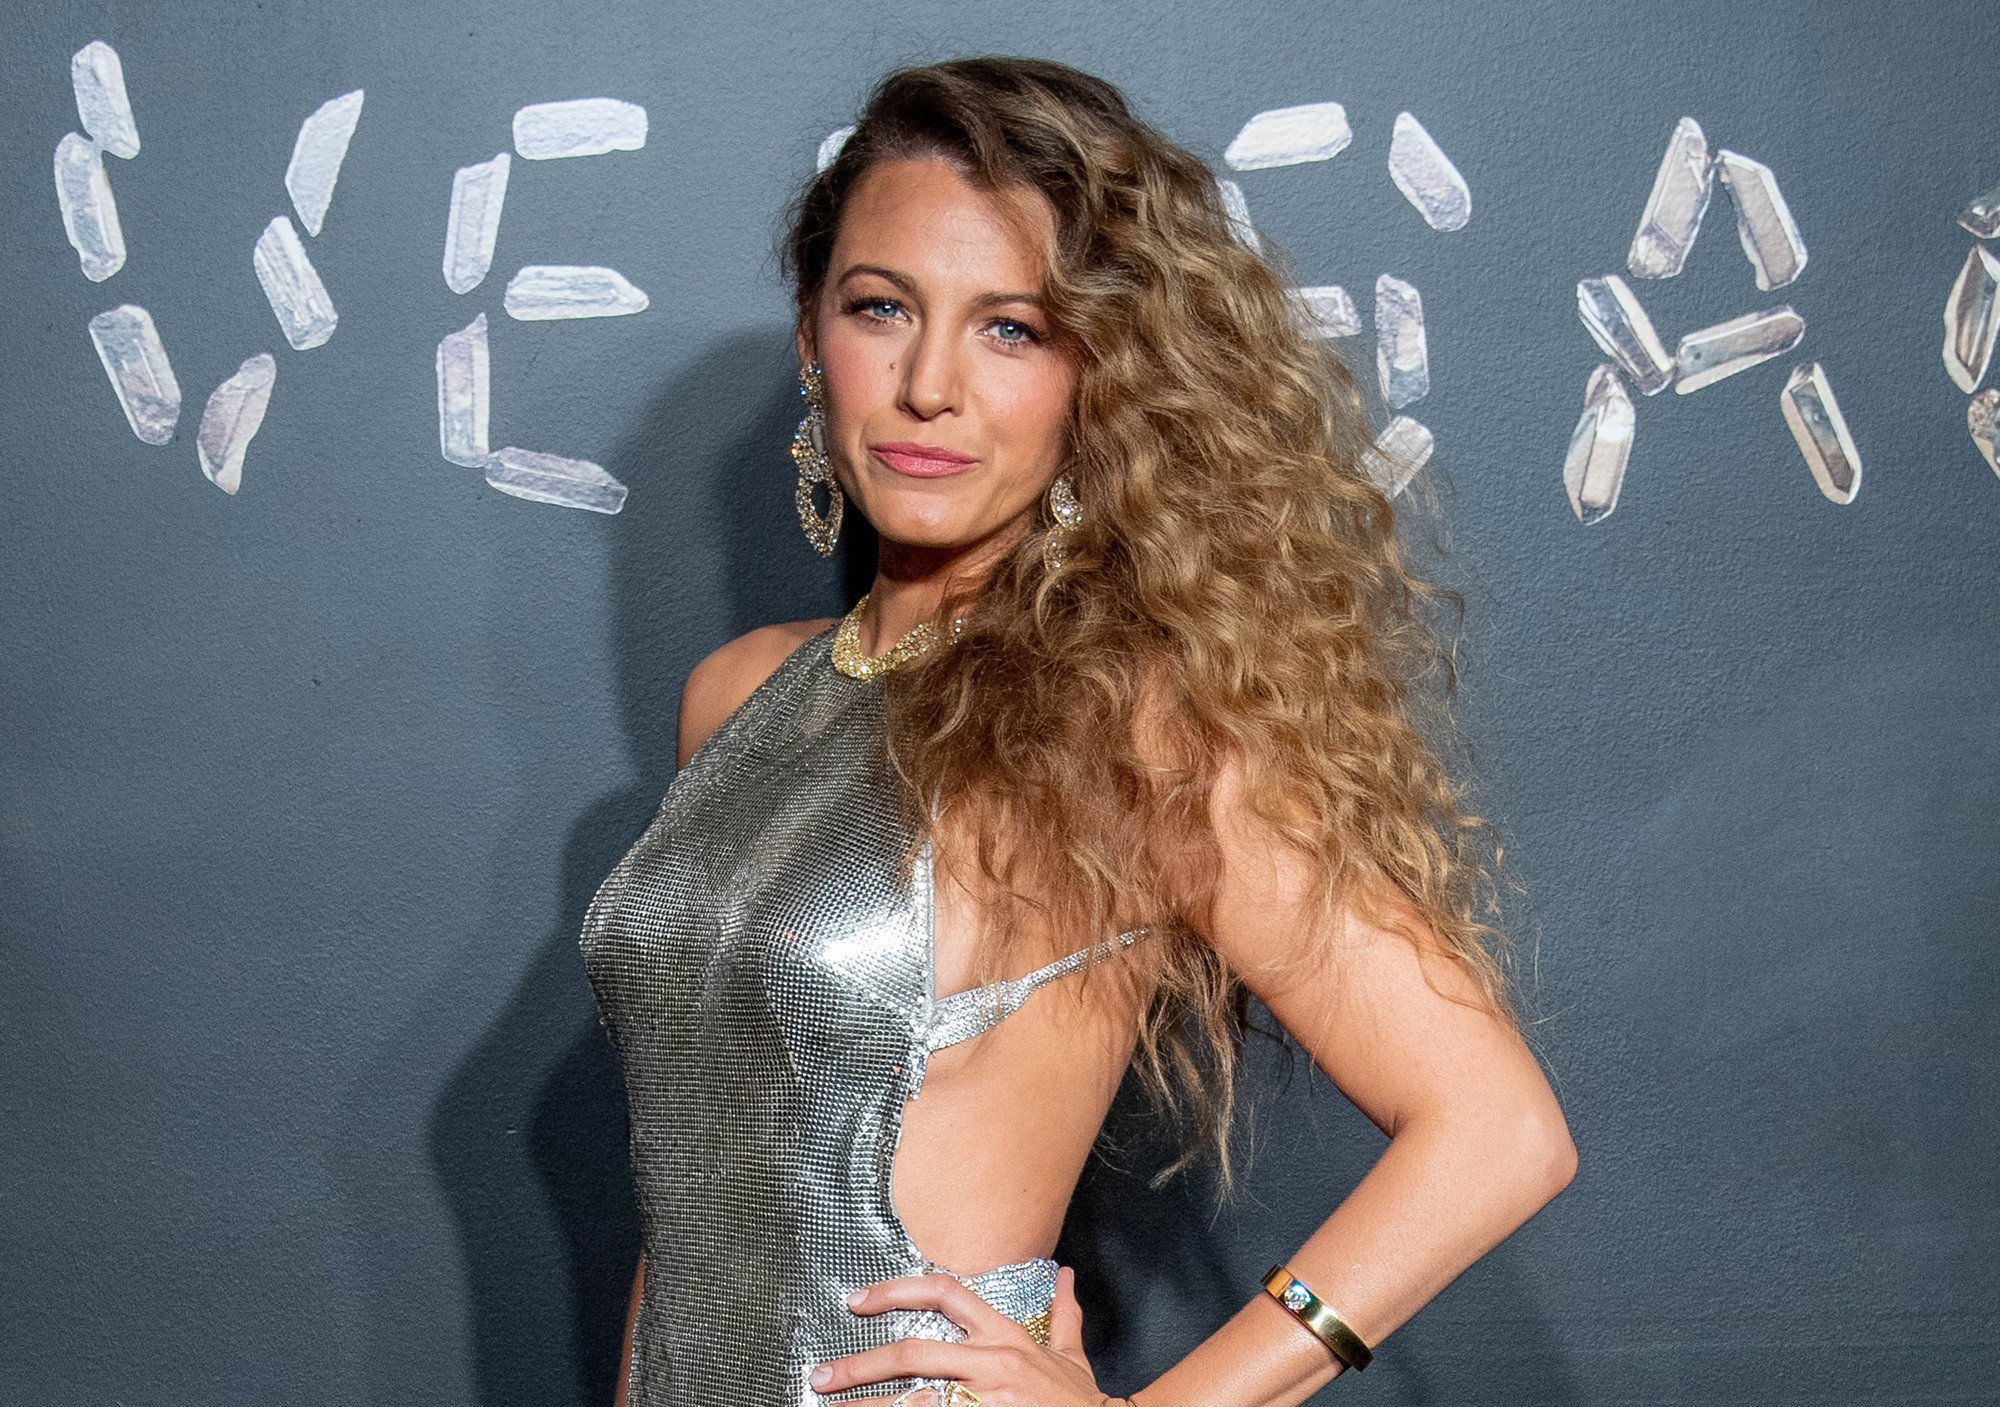 Blake Lively's vintage Versace chainmail dress costs $88K